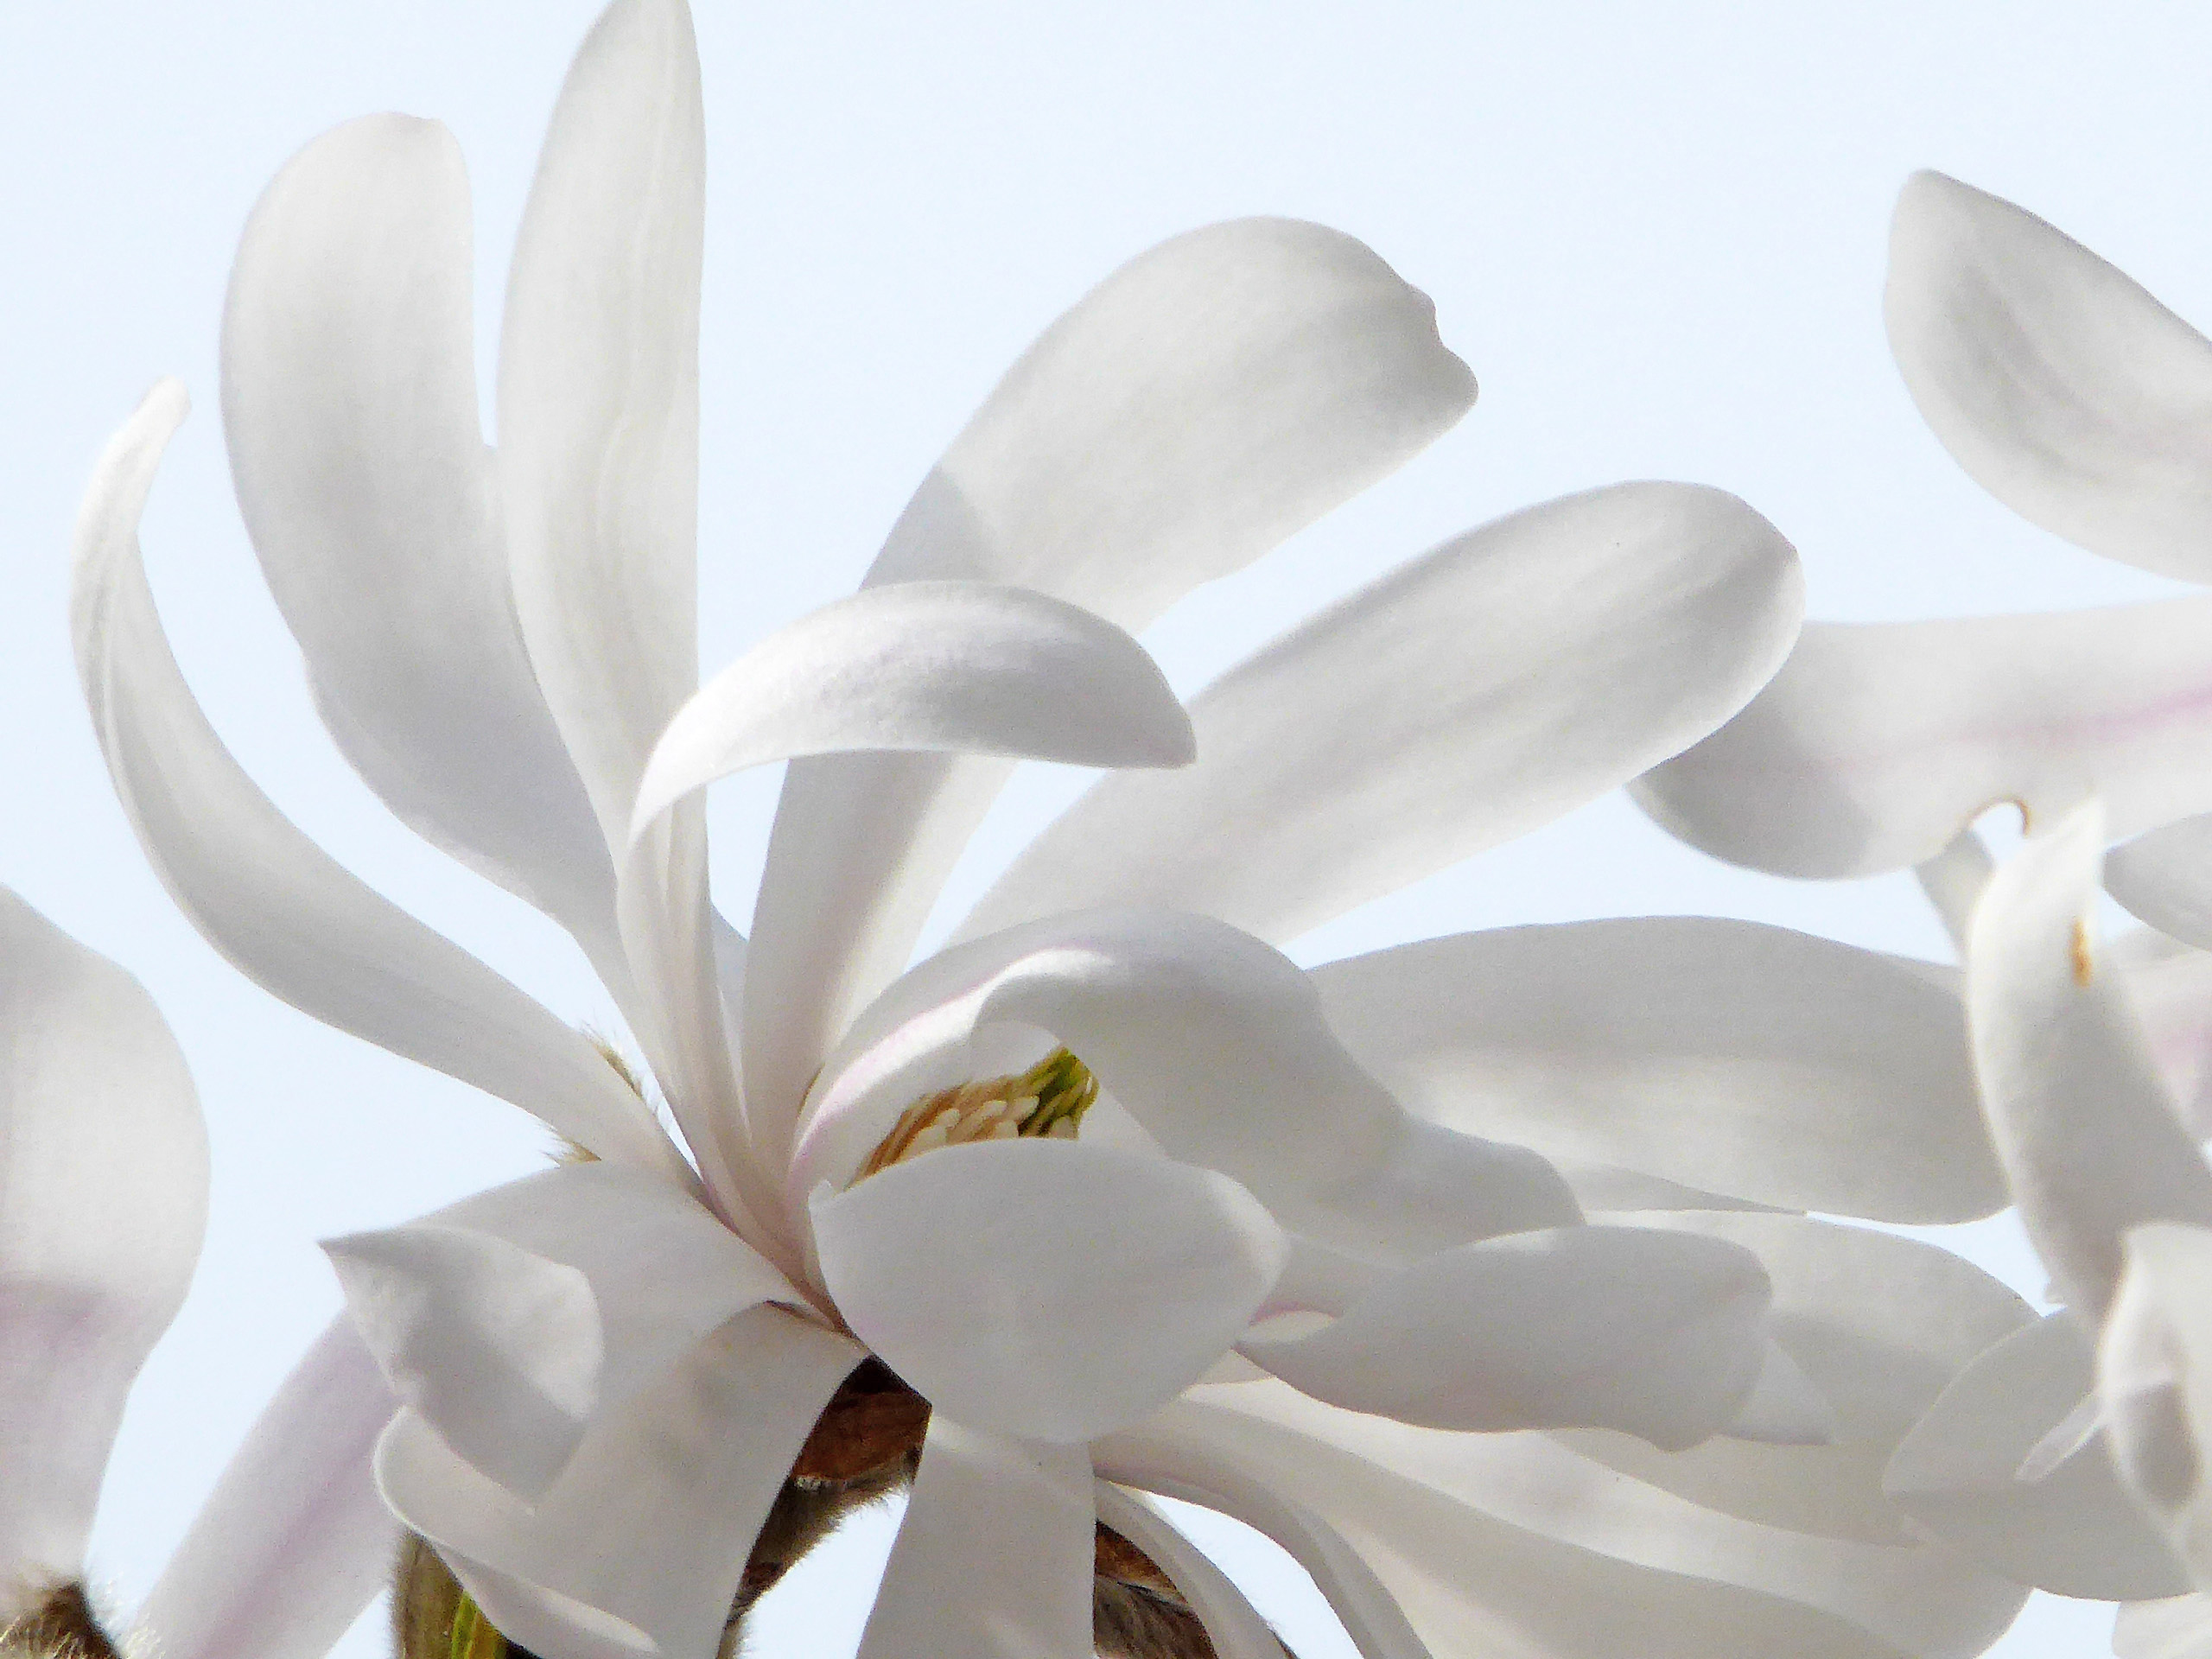 White Magnolia dancing